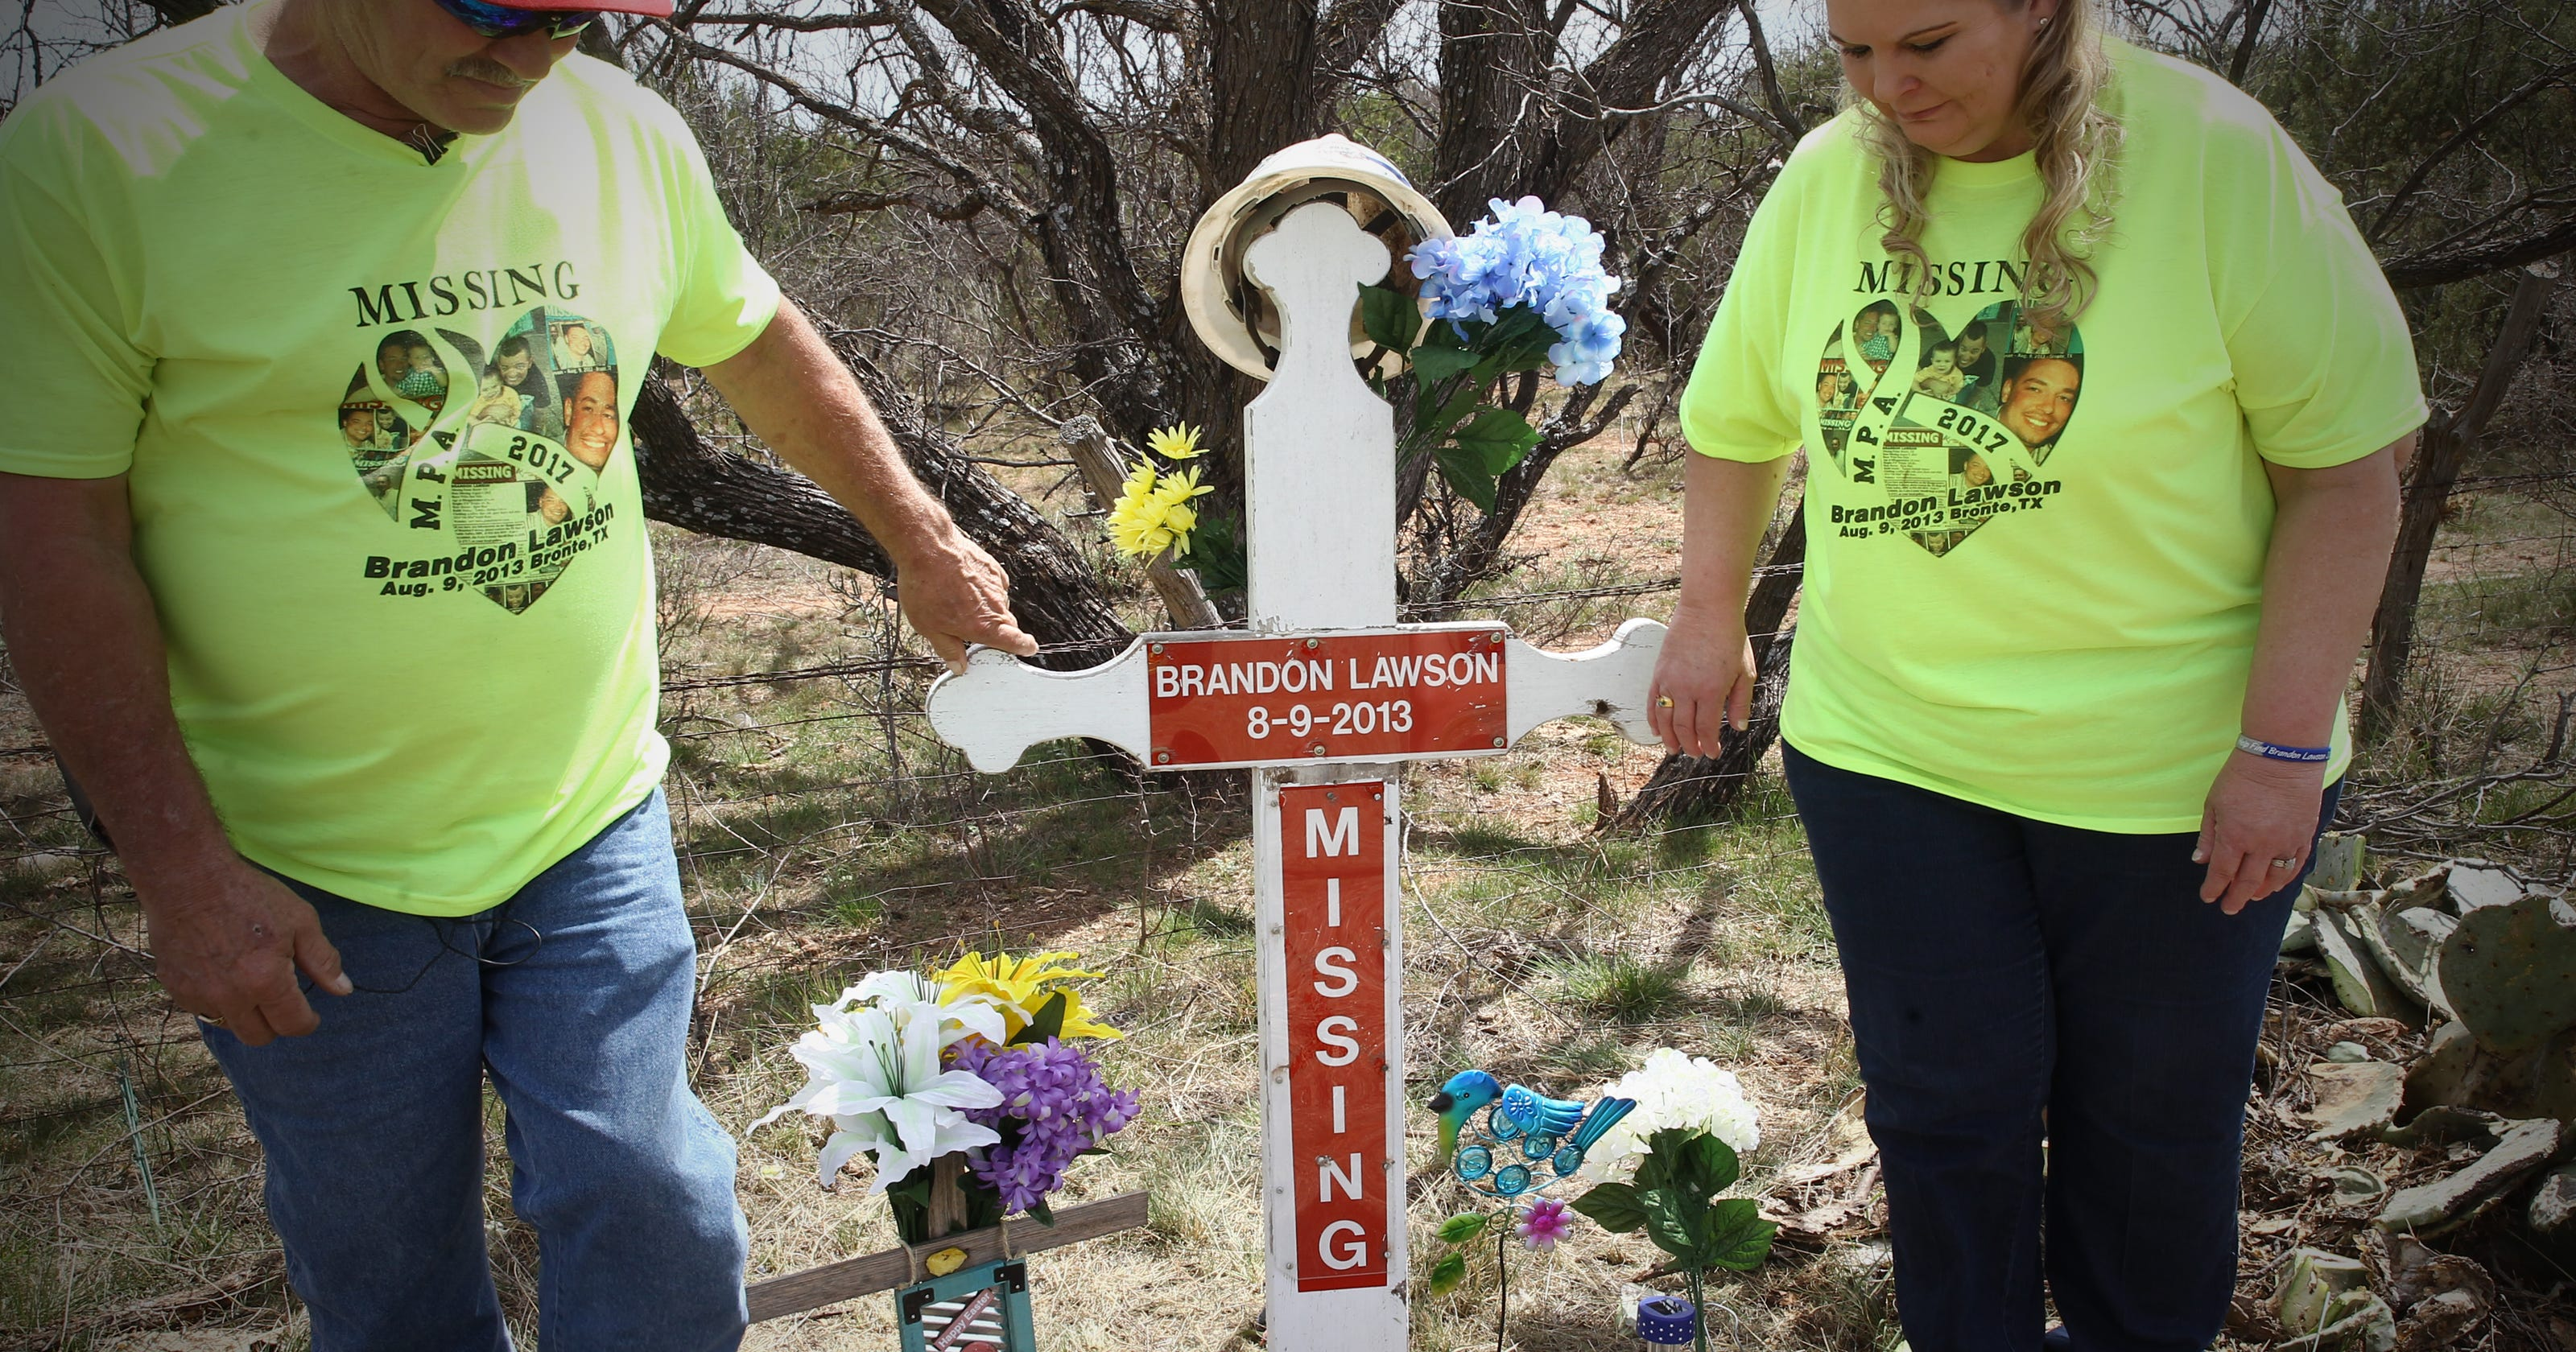 The mystery around the disappearance of Brandon Lawson in